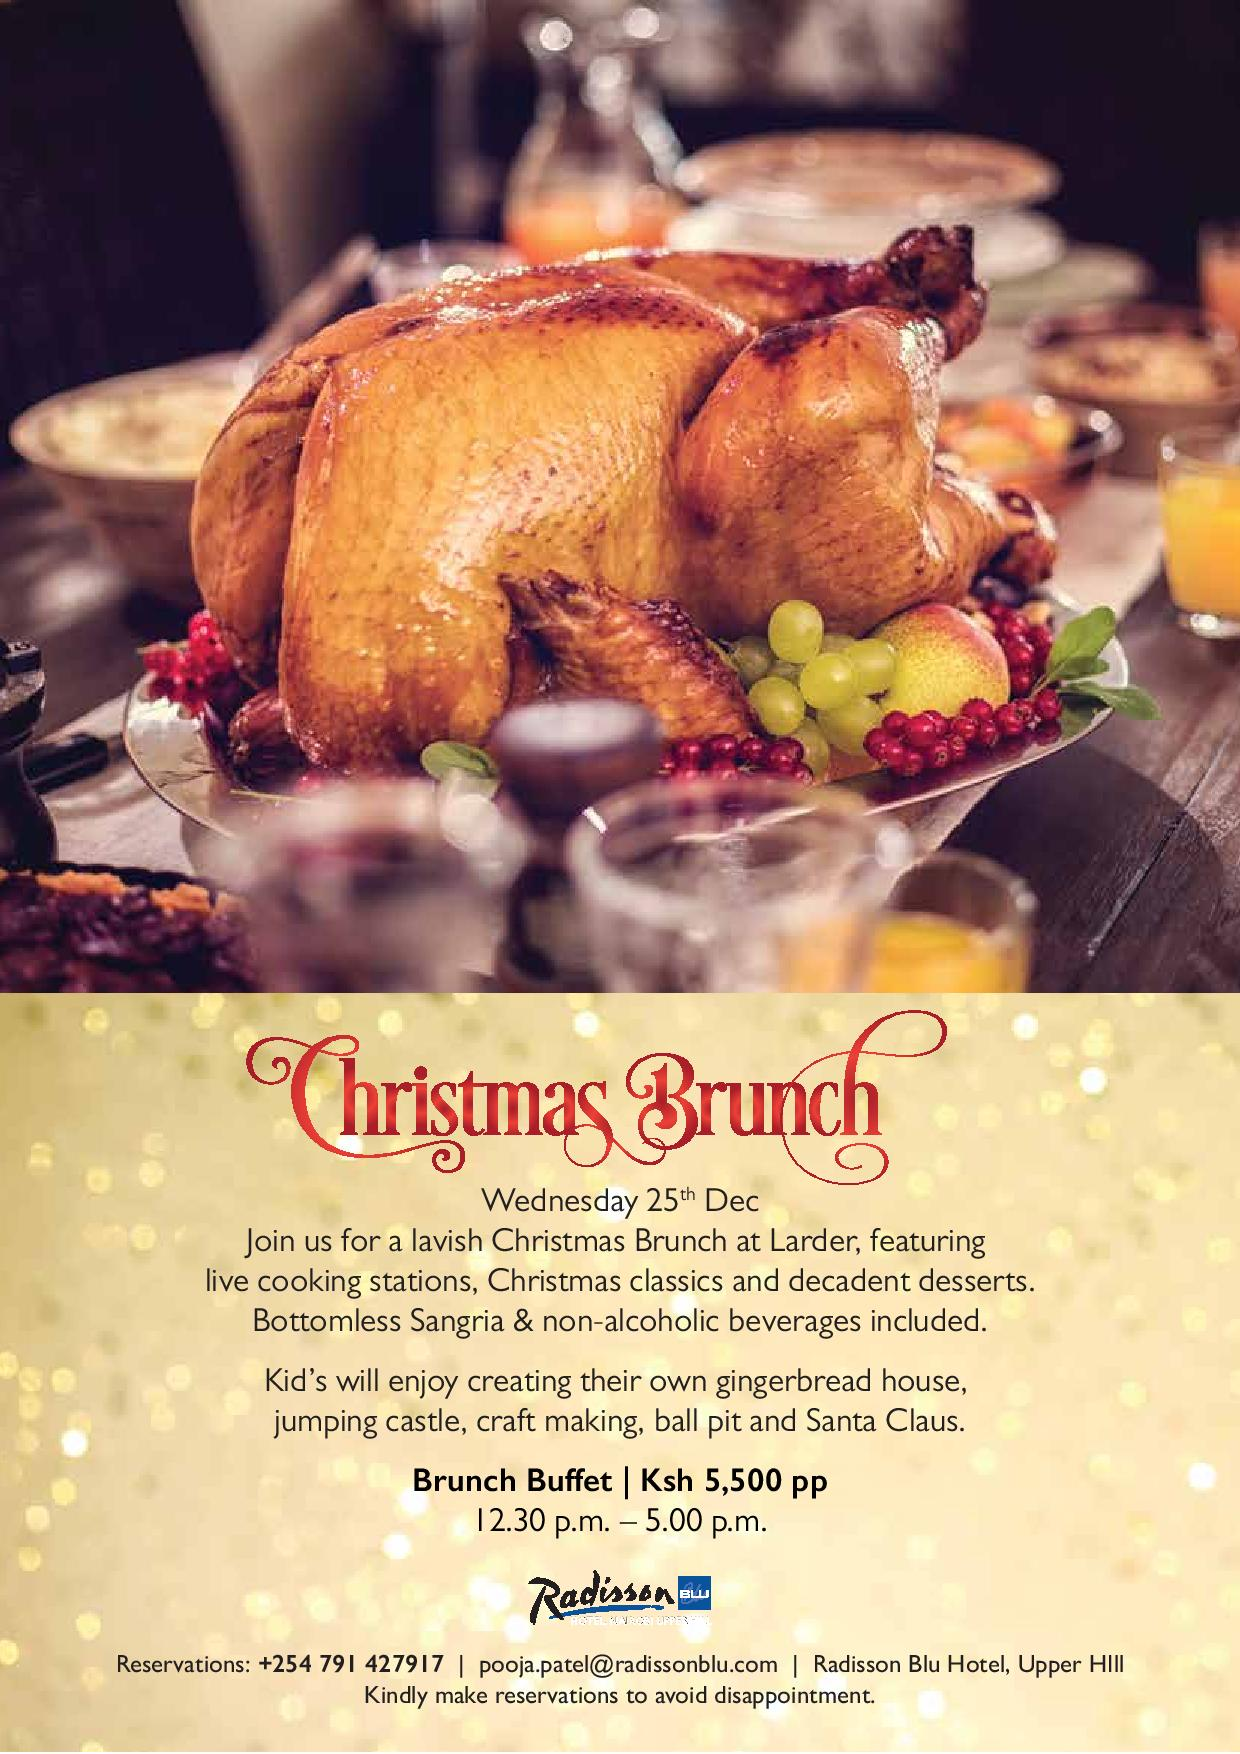 Lavish Christmas Brunch